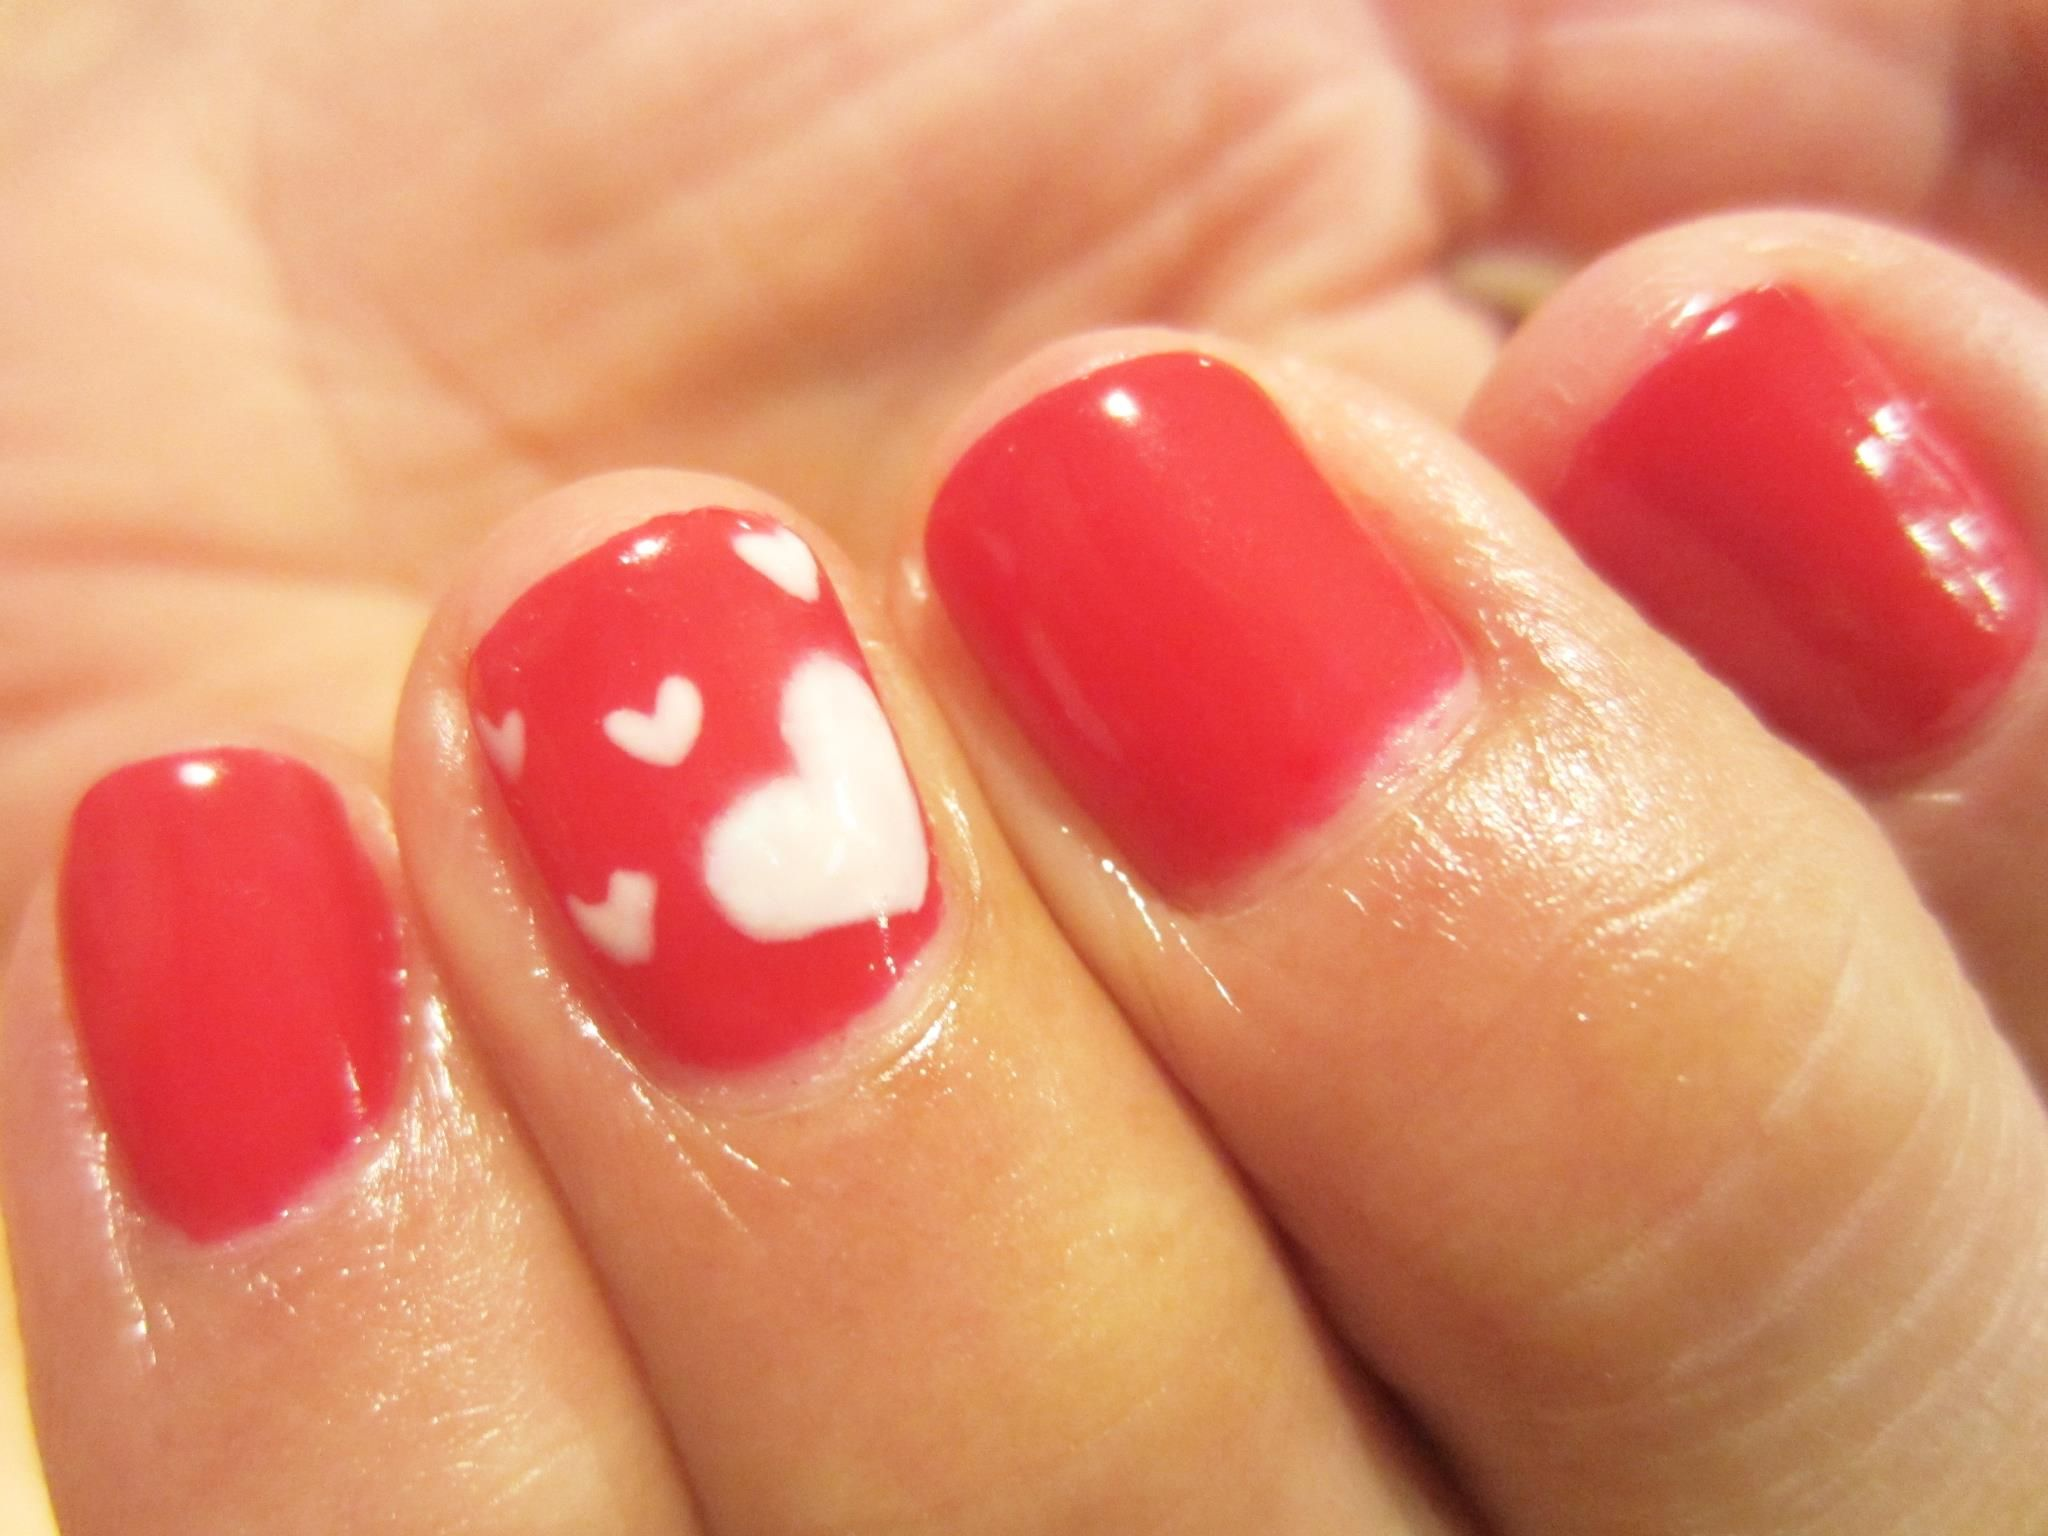 Red Carpet Manicure Valentines Day Nails With Red Carpet Ready And 100  White Hot By Loyda